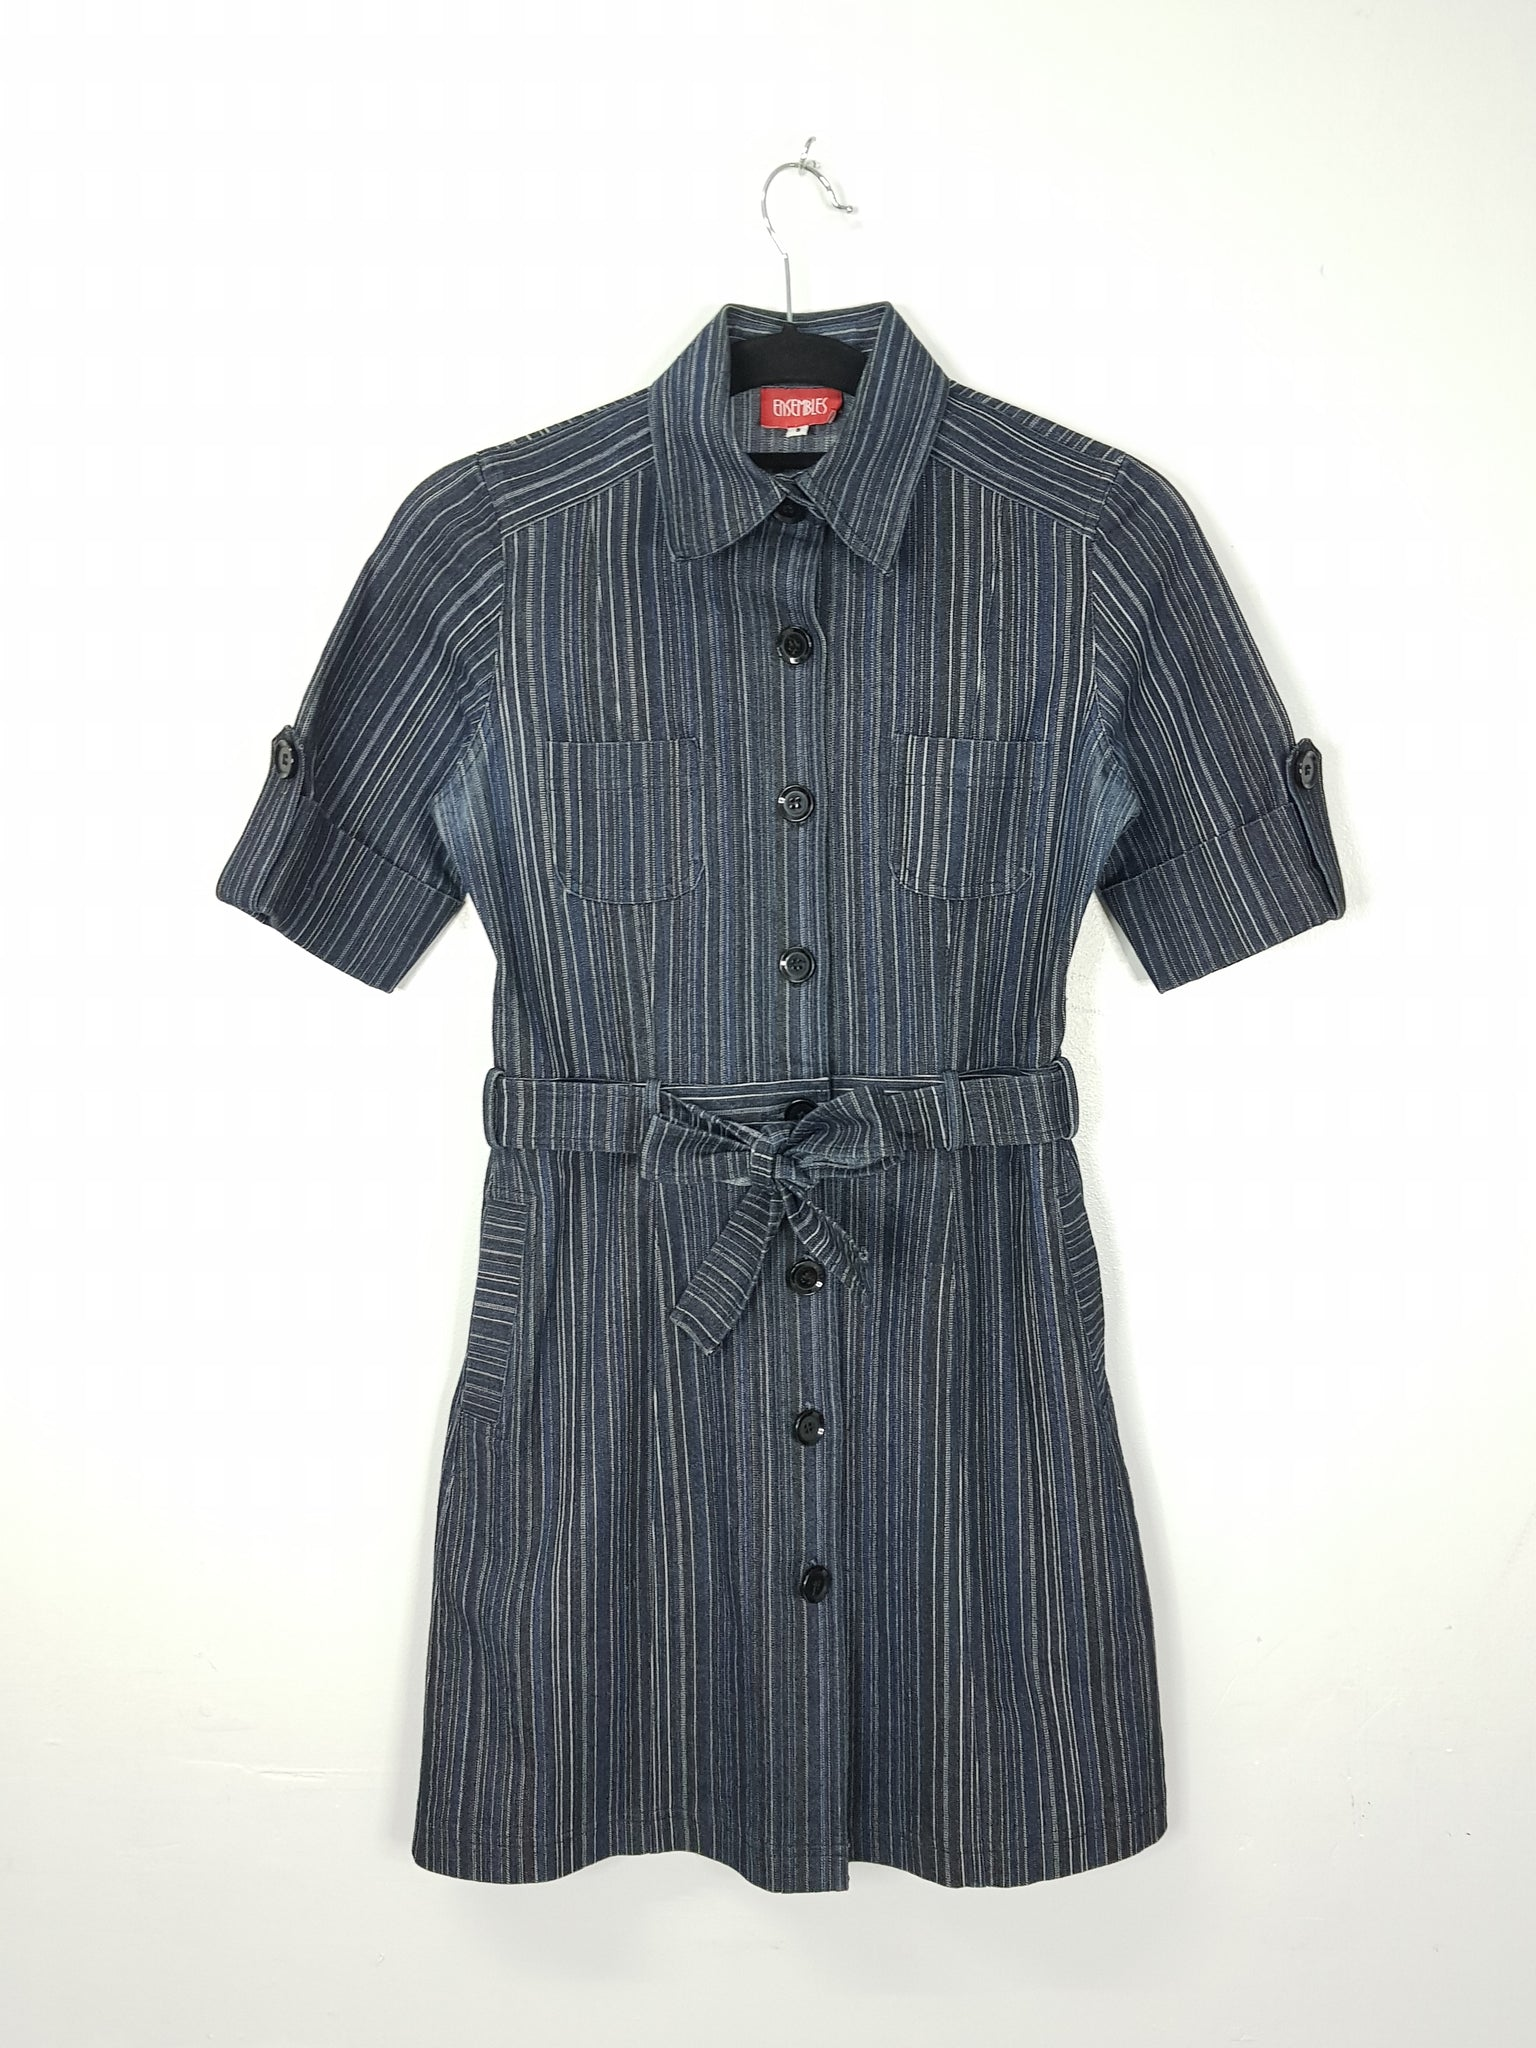 Ensembles dark blue buttoned down dress